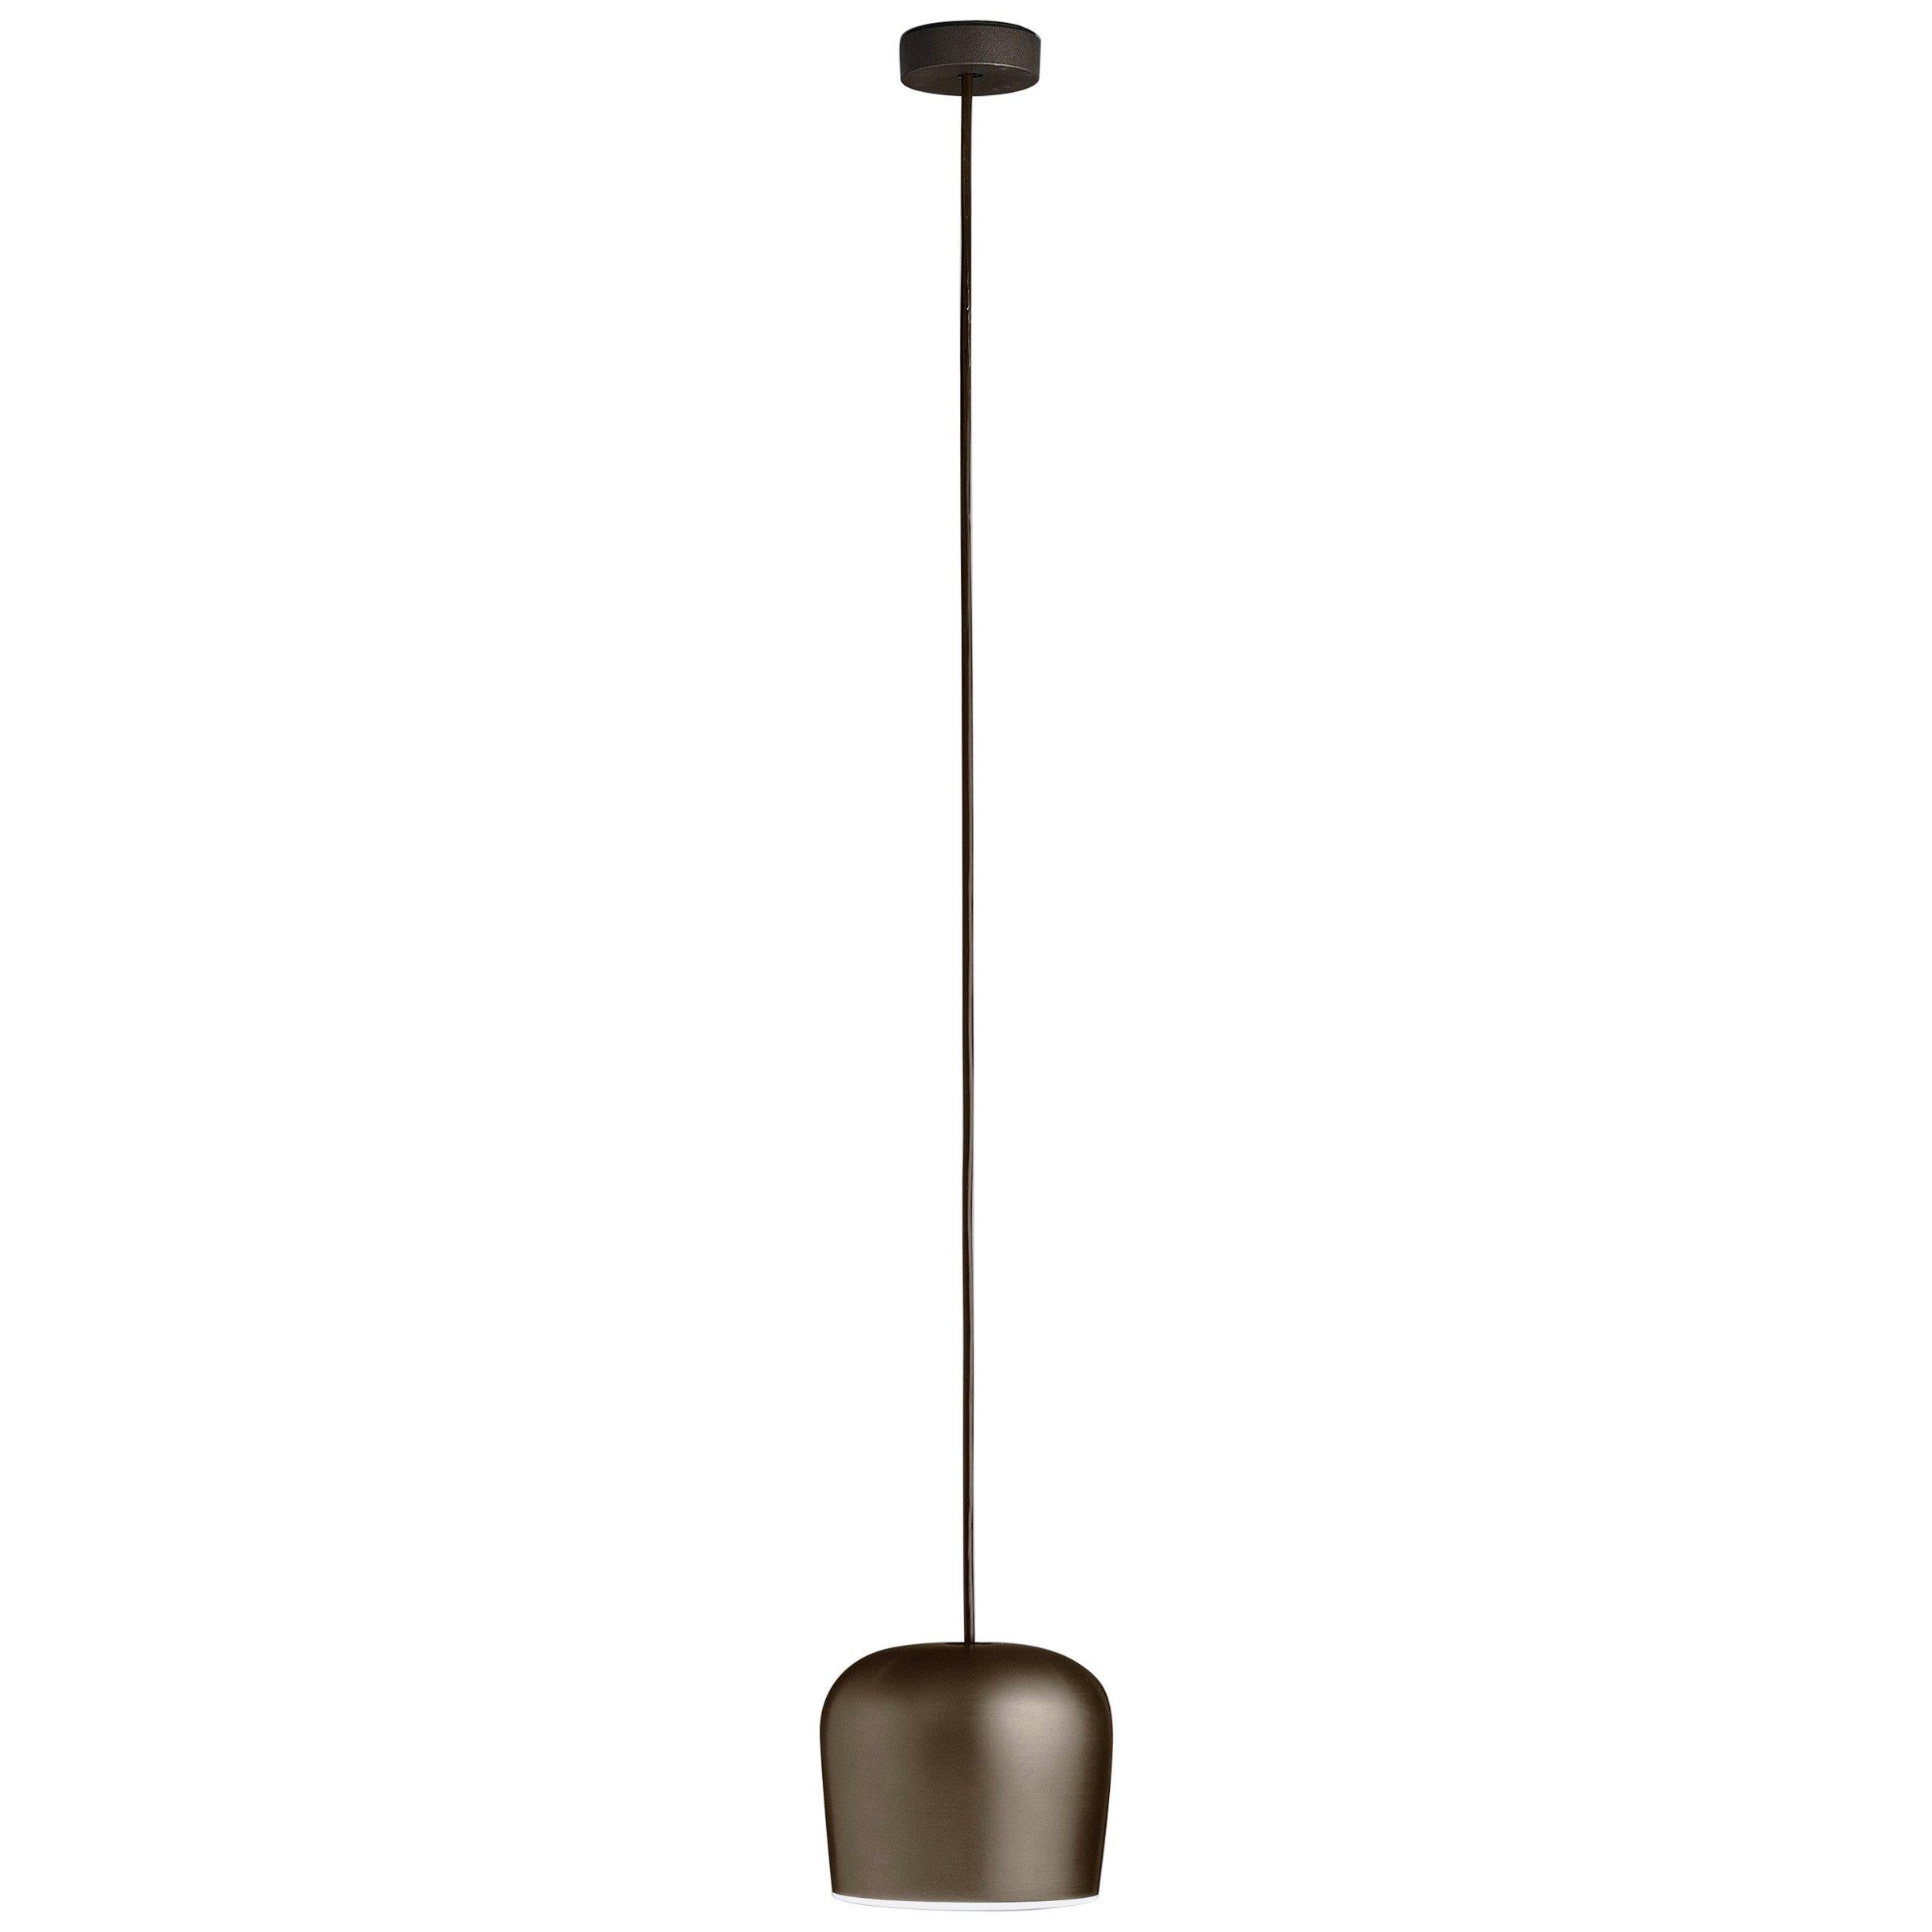 Bouroullec Modern Bronze Hanging Aim Pendant Light for FLOS, in stock